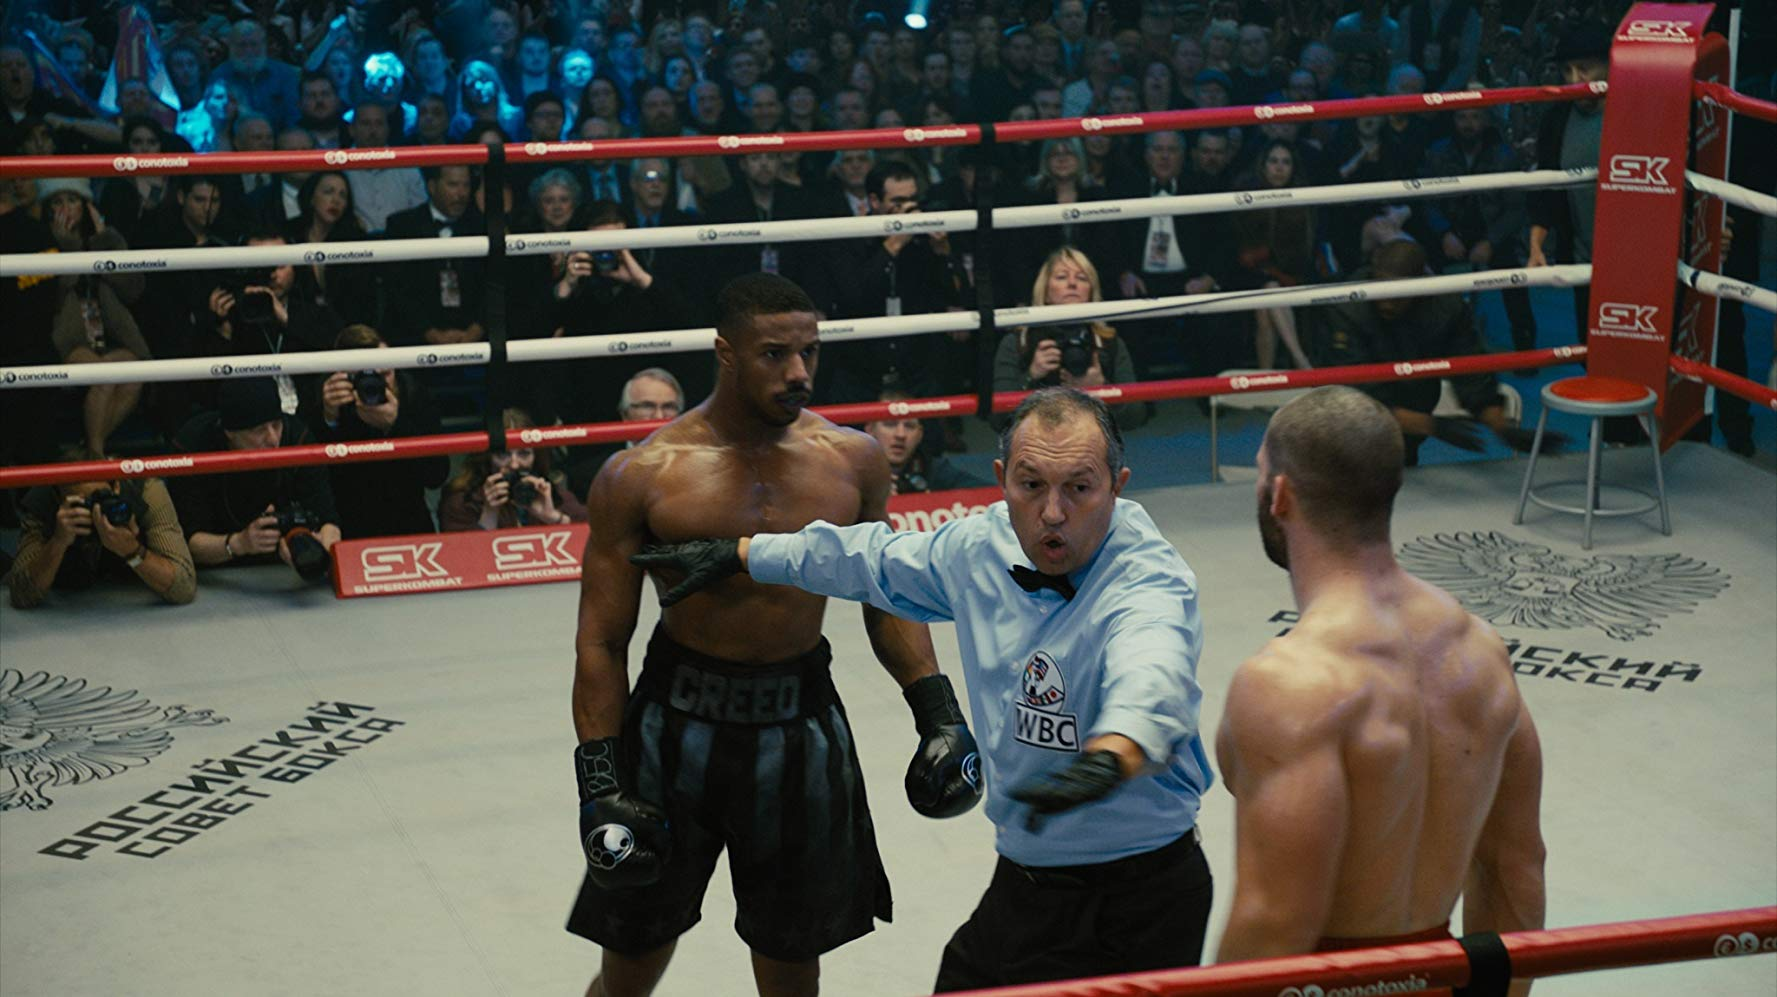 Creed II film review; Rocky, boxing, sports, Michael B. Jordan